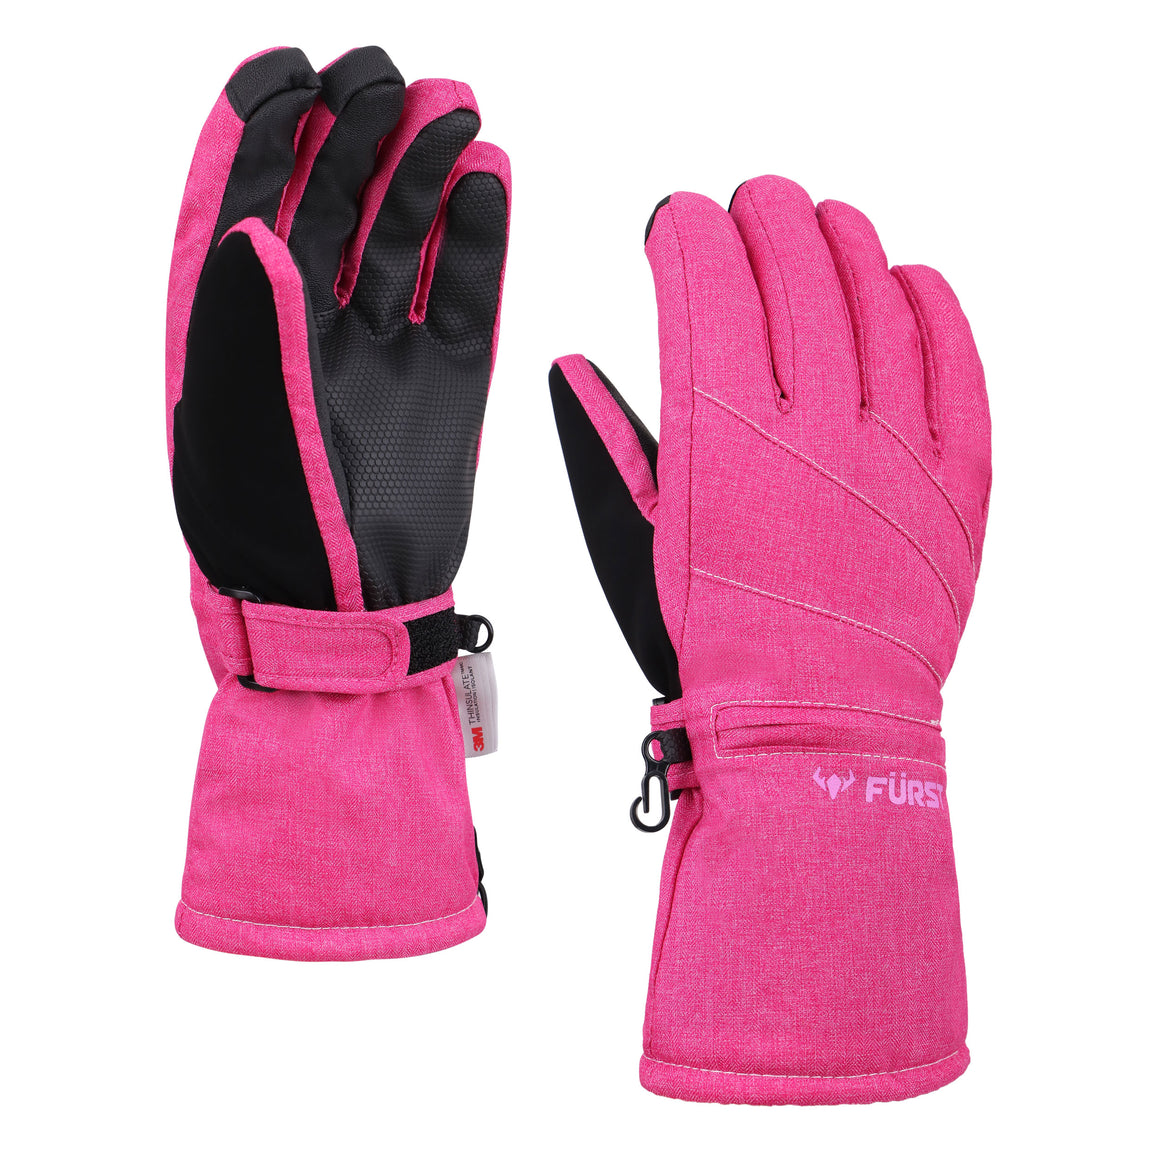 Women's Storm Touchscreen Winter Gloves and Scarf Set (Pink)